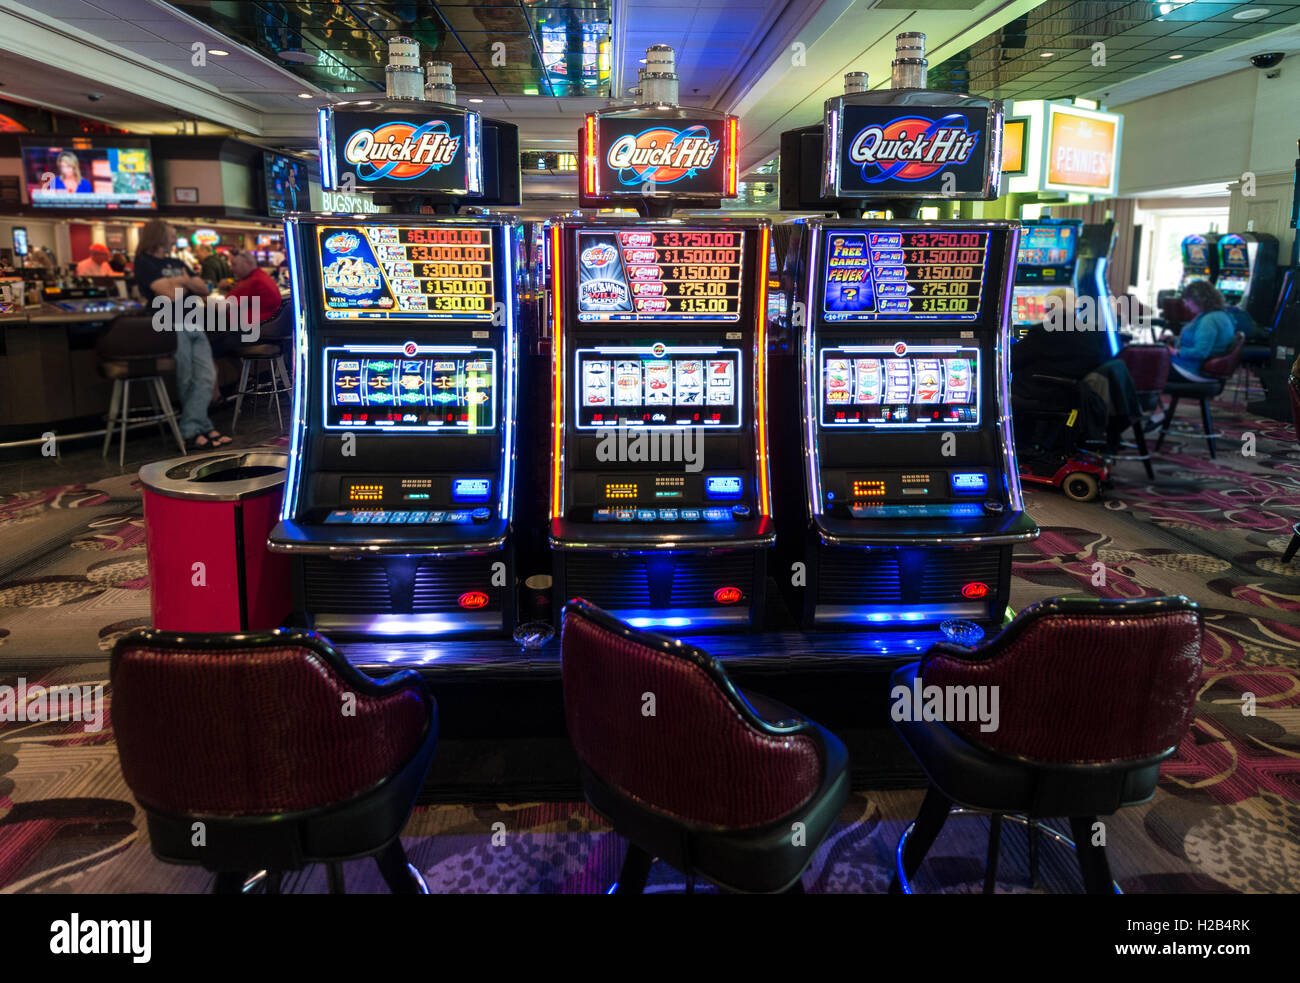 Slots, Quick Hit at casino, Las Vegas, Nevada, USA Stock Photo